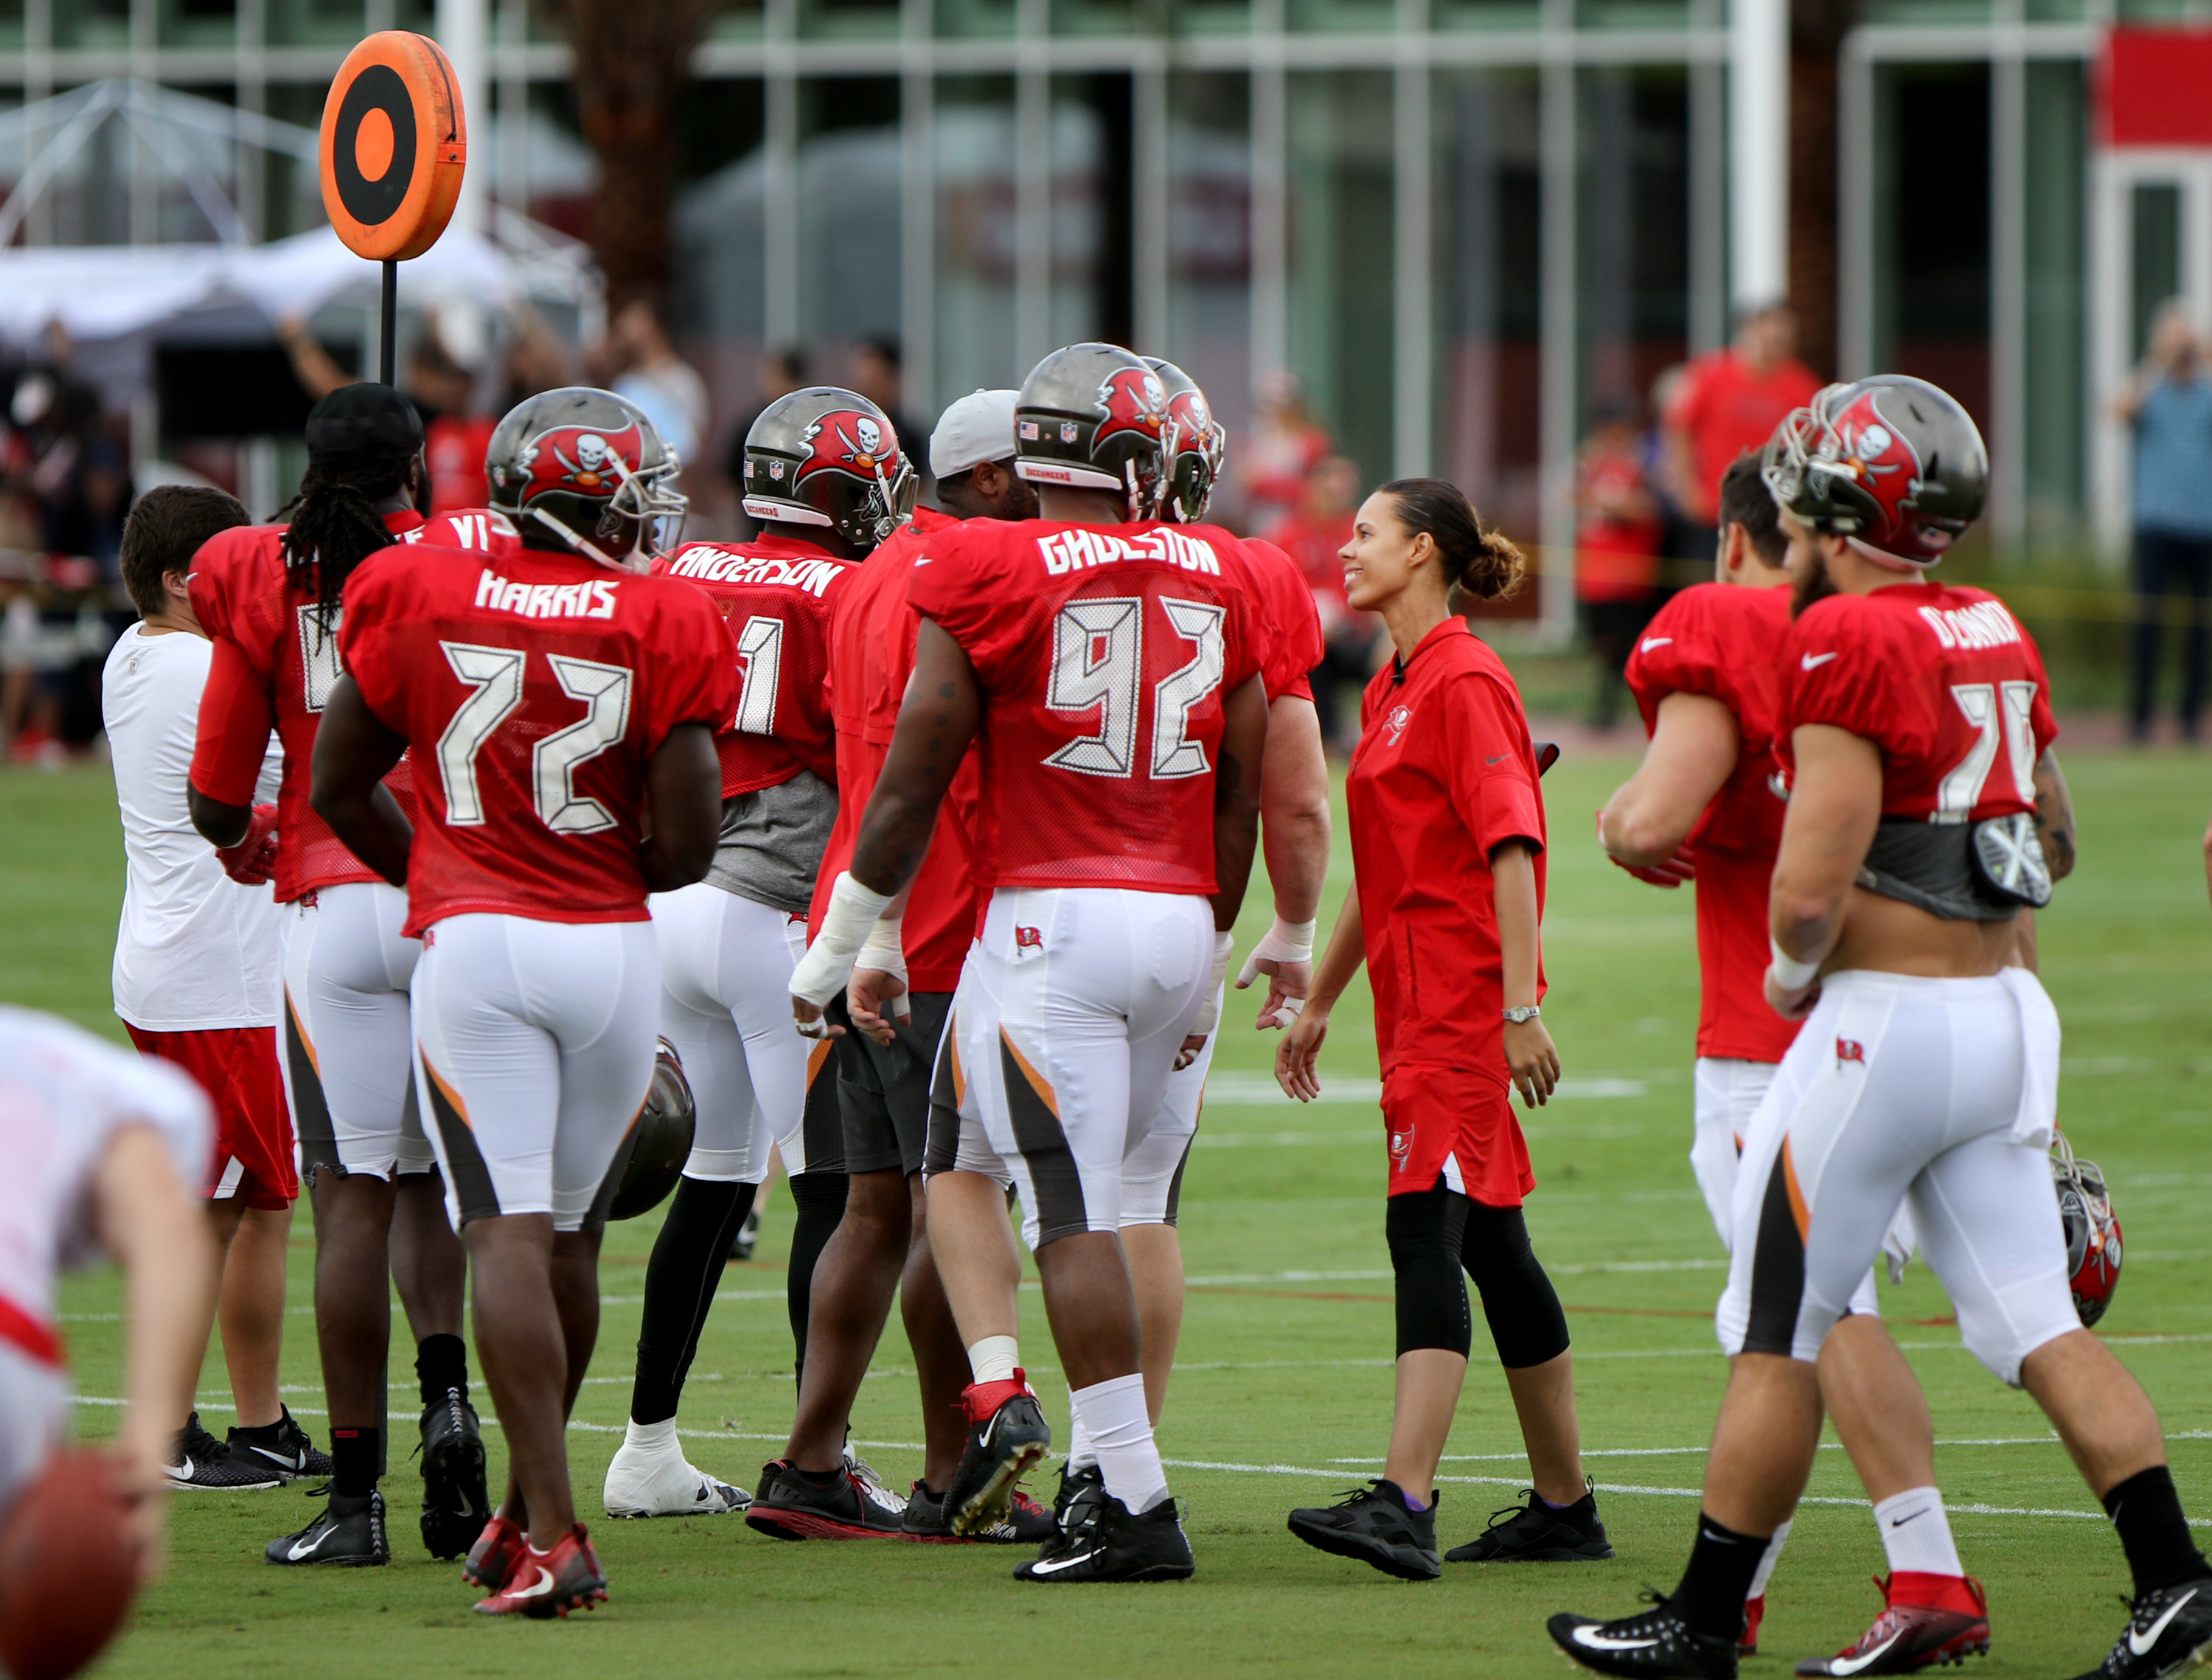 b1253abc Meet the Bucs intern/coach who says 'I am fully in a dream'